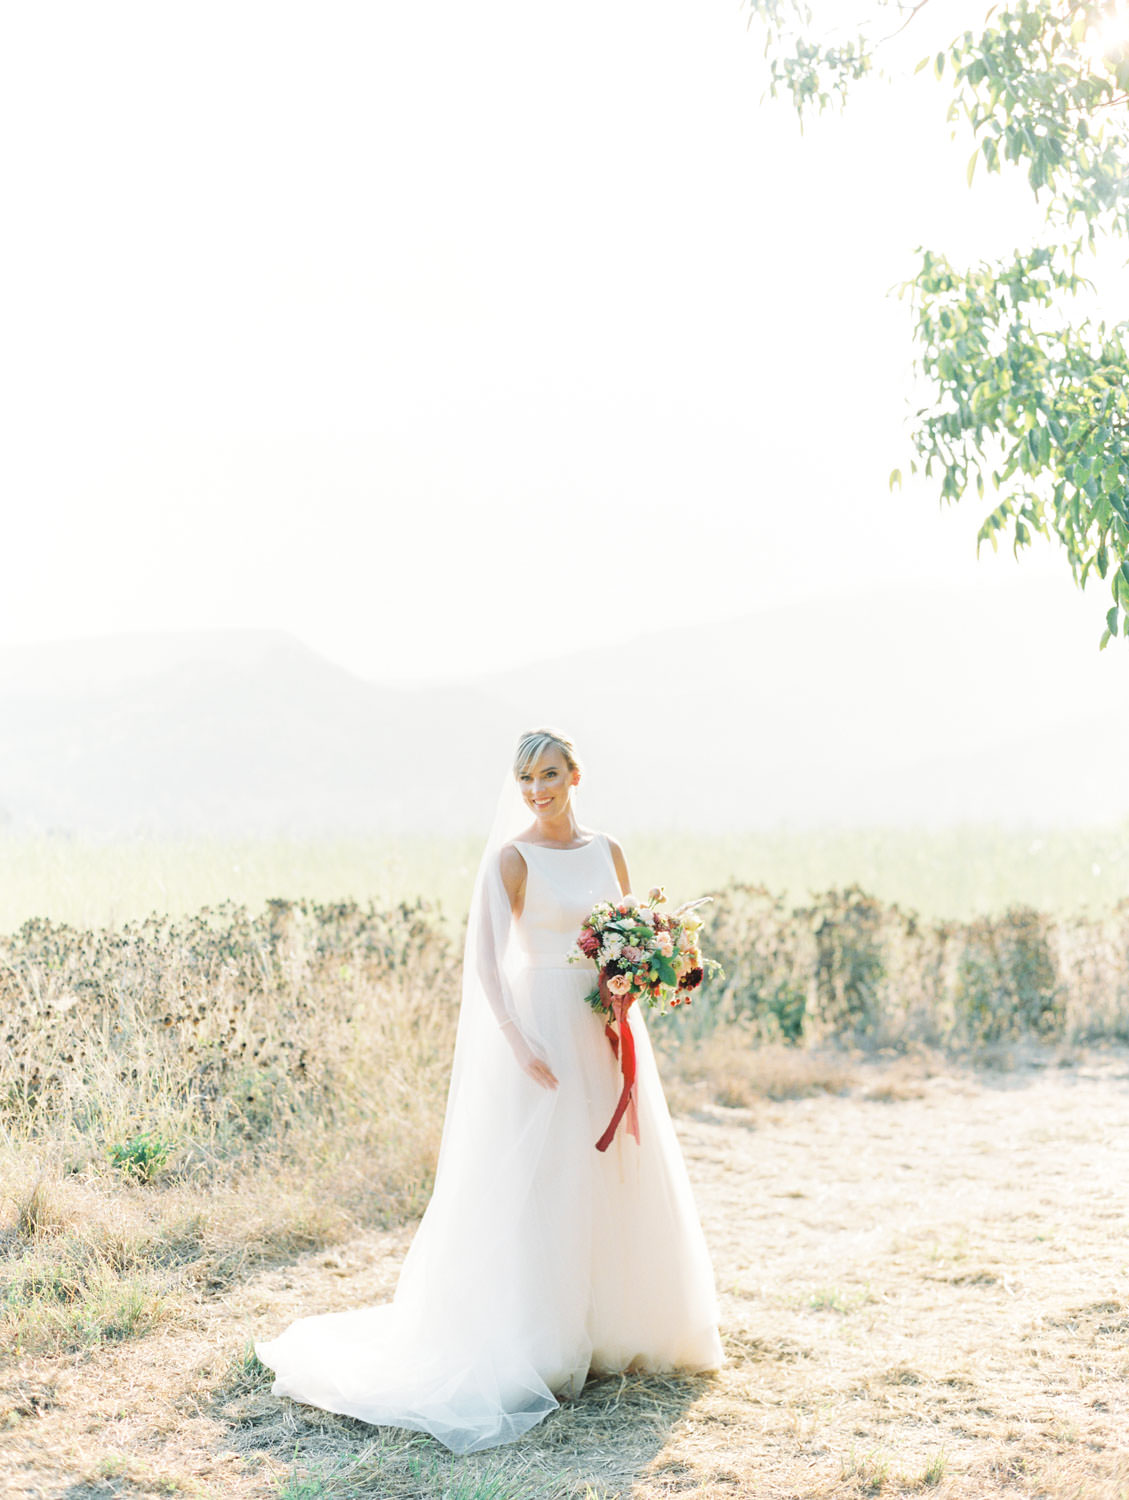 Bridal portrait with ethereal and dreamy light holding a colorful bouquet with ribbons by film photographer Cavin Elizabeth Photography